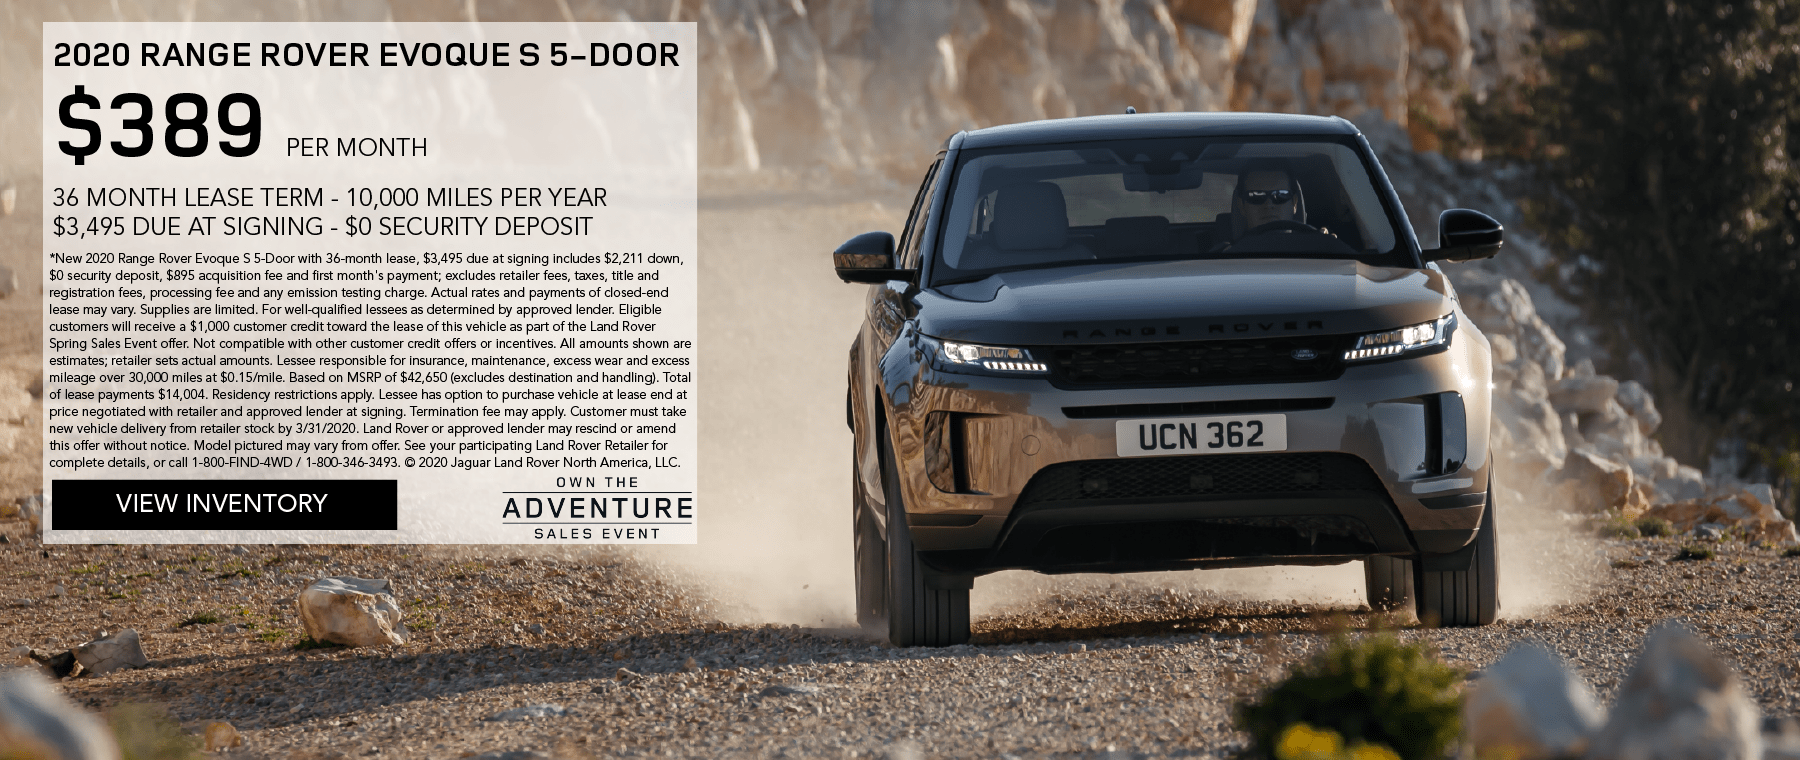 2020 RANGE ROVER EVOQUE S 5-DOOR. $389 PER MONTH. 36 MONTH LEASE TERM. $3,495 CASH DUE AT SIGNING. INCLUDES $1,000 CUSTOMER CREDIT. $0 SECURITY DEPOSIT. 10,000 MILES PER YEAR. OFFER ENDS 3/31/2020. OWN THE ADVENTURE SALES EVENT. VIEW INVENTORY. LIGHT BROWN RANGE ROVER EVOQUE DRIVING DOWN DIRT ROAD.